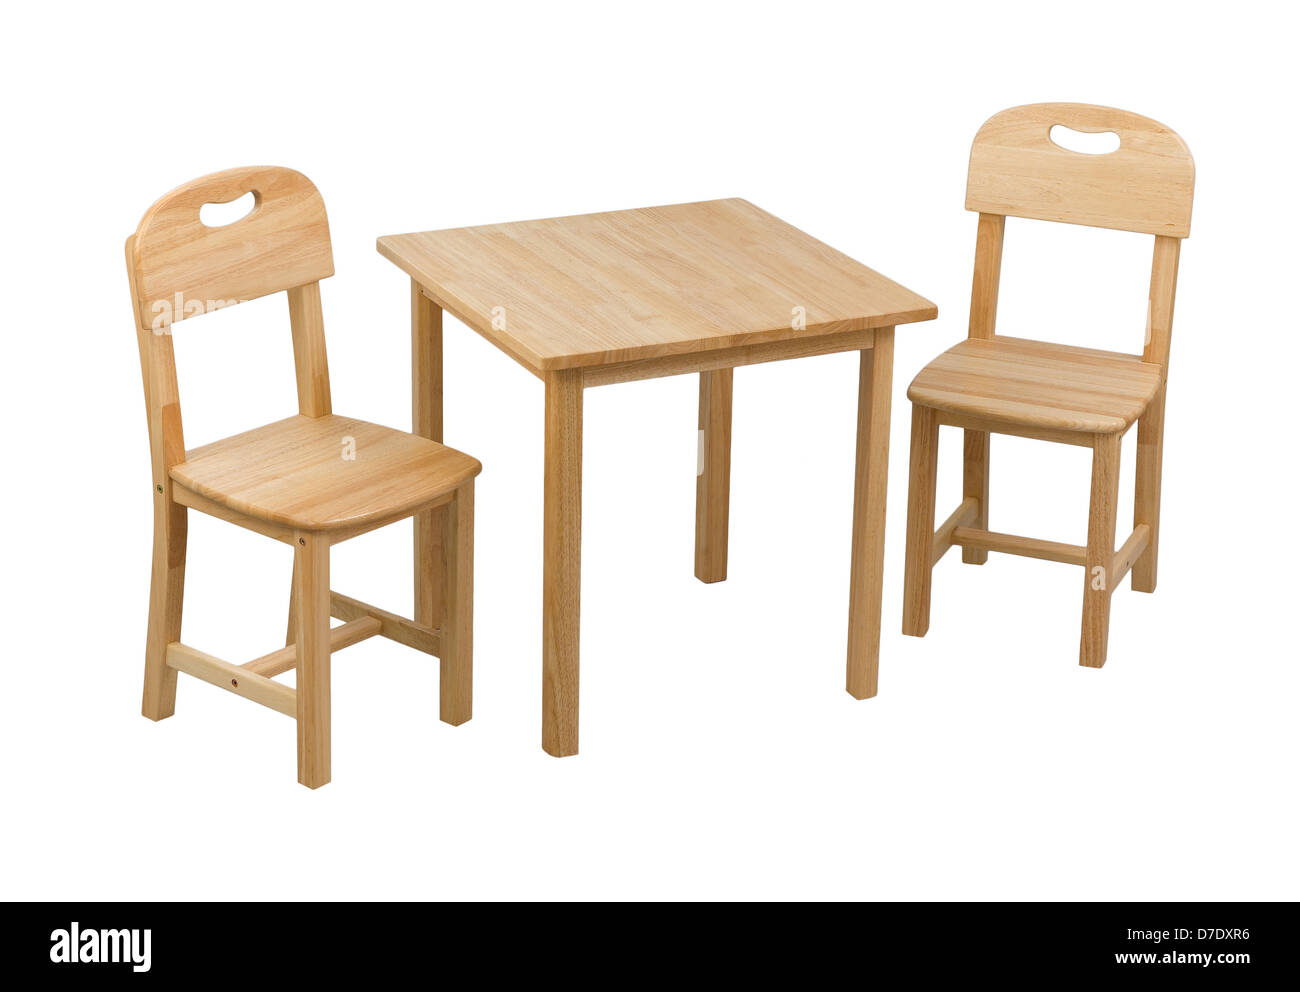 A small wooden chairs and desk for kids stock photo for Small chair for kid